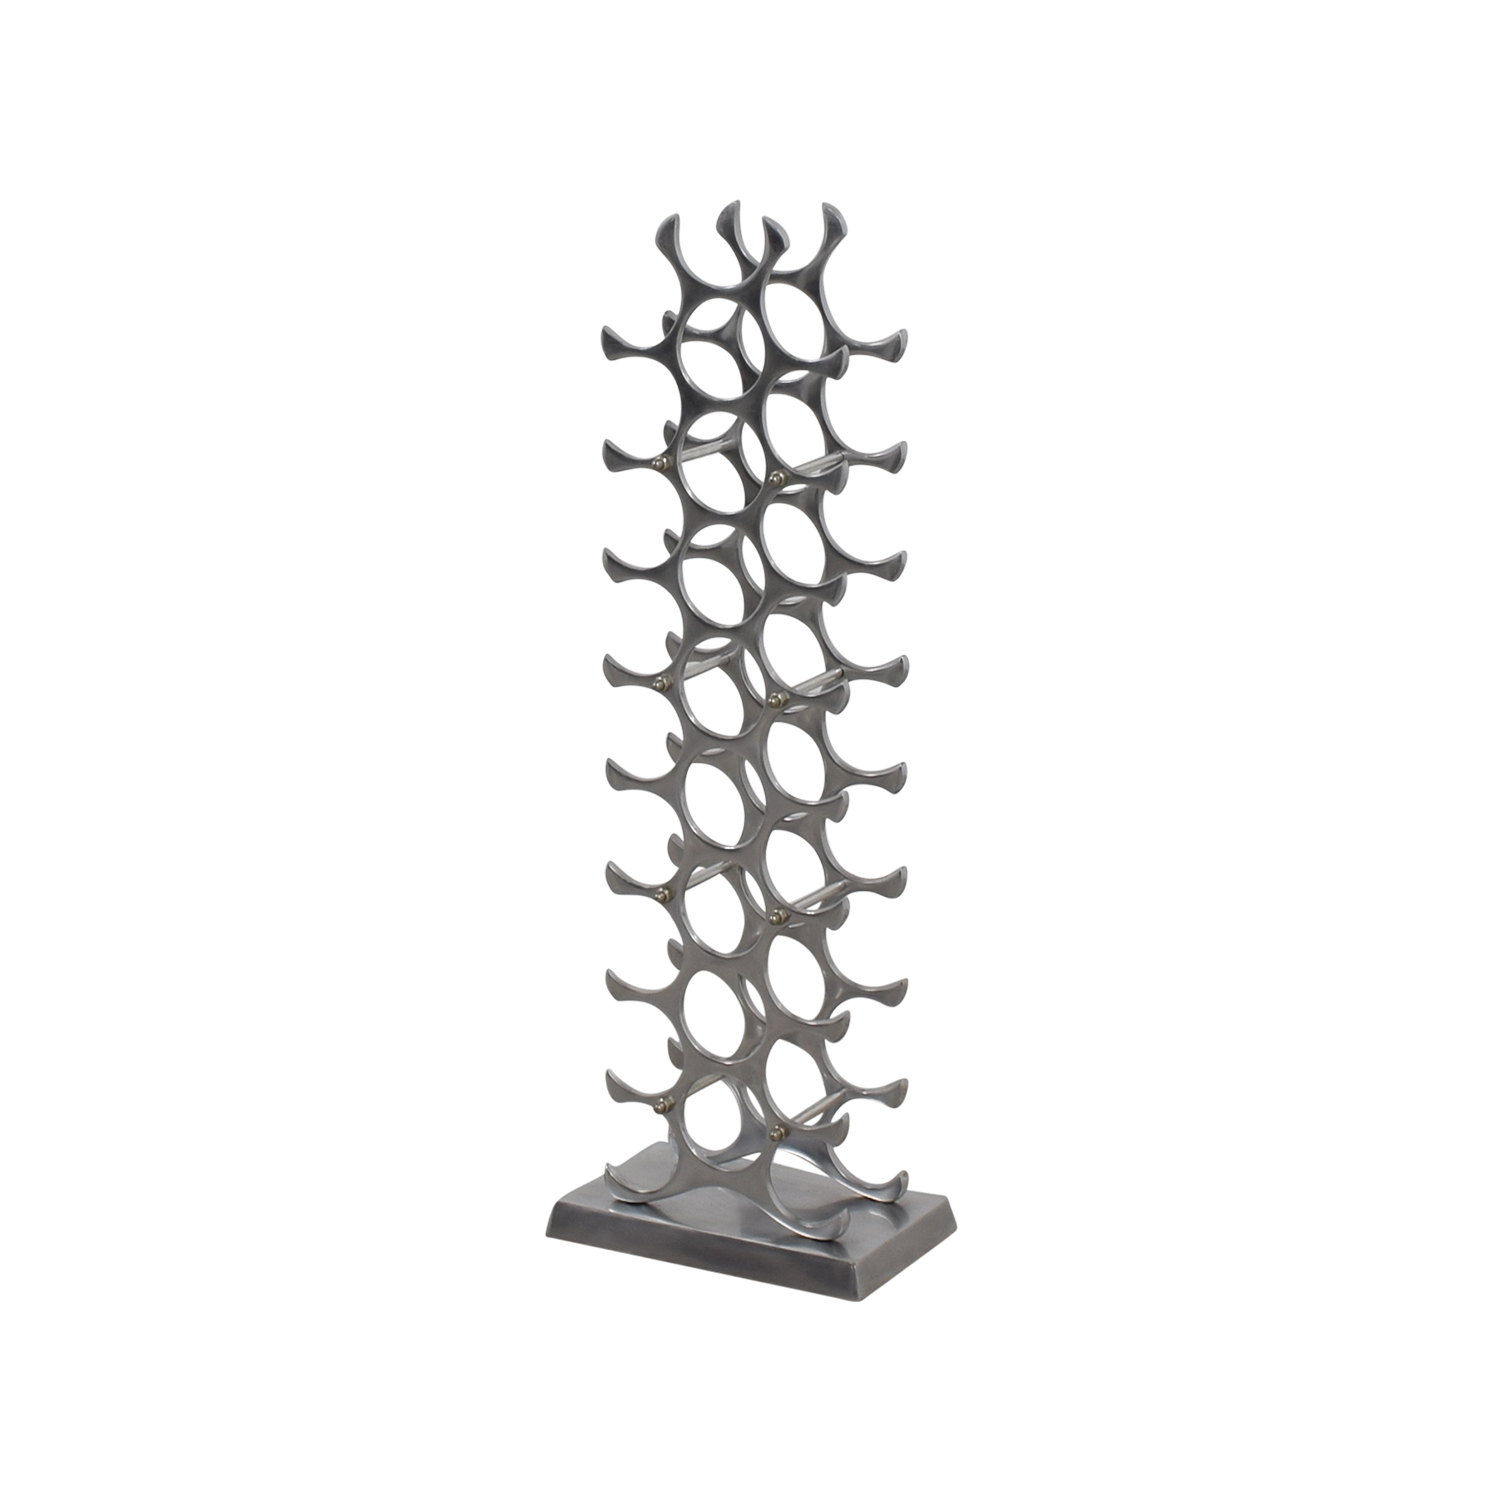 90 Off Artisanti Artisanti Silver Wine Rack Decor